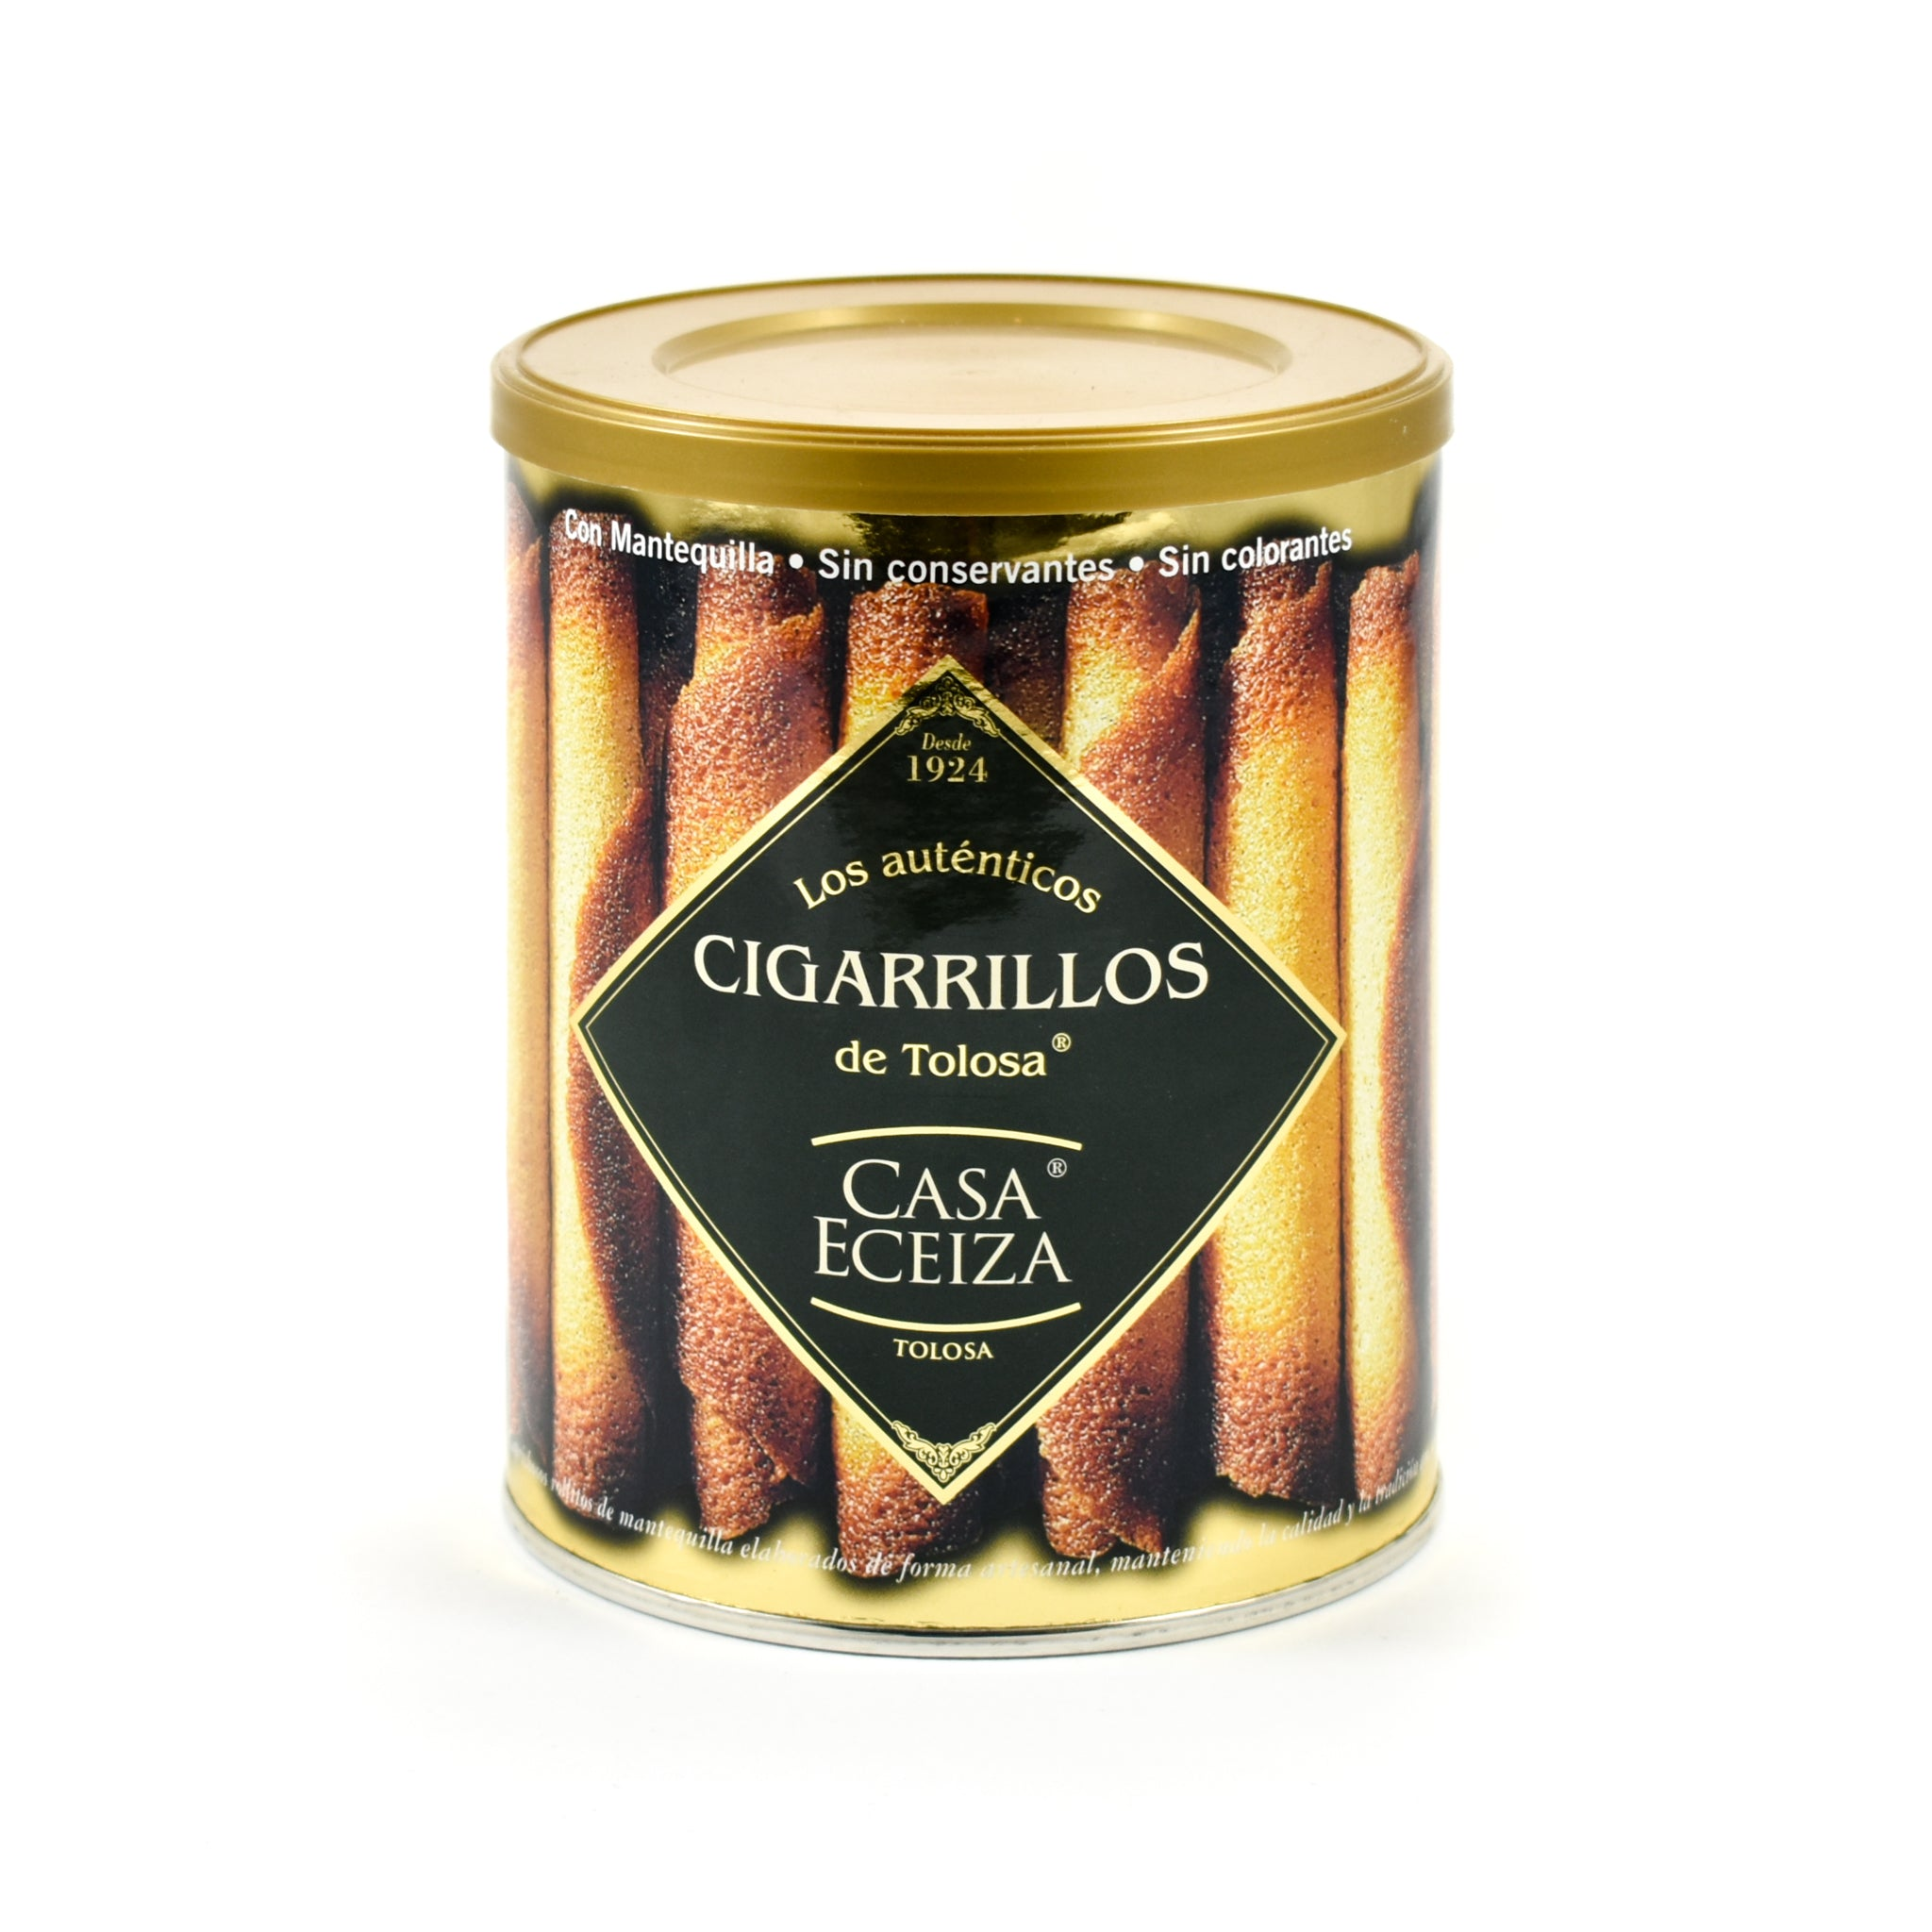 Casa Eceiza Cigarrillos 160g Ingredients Chocolate Bars & Confectionery Spanish Food